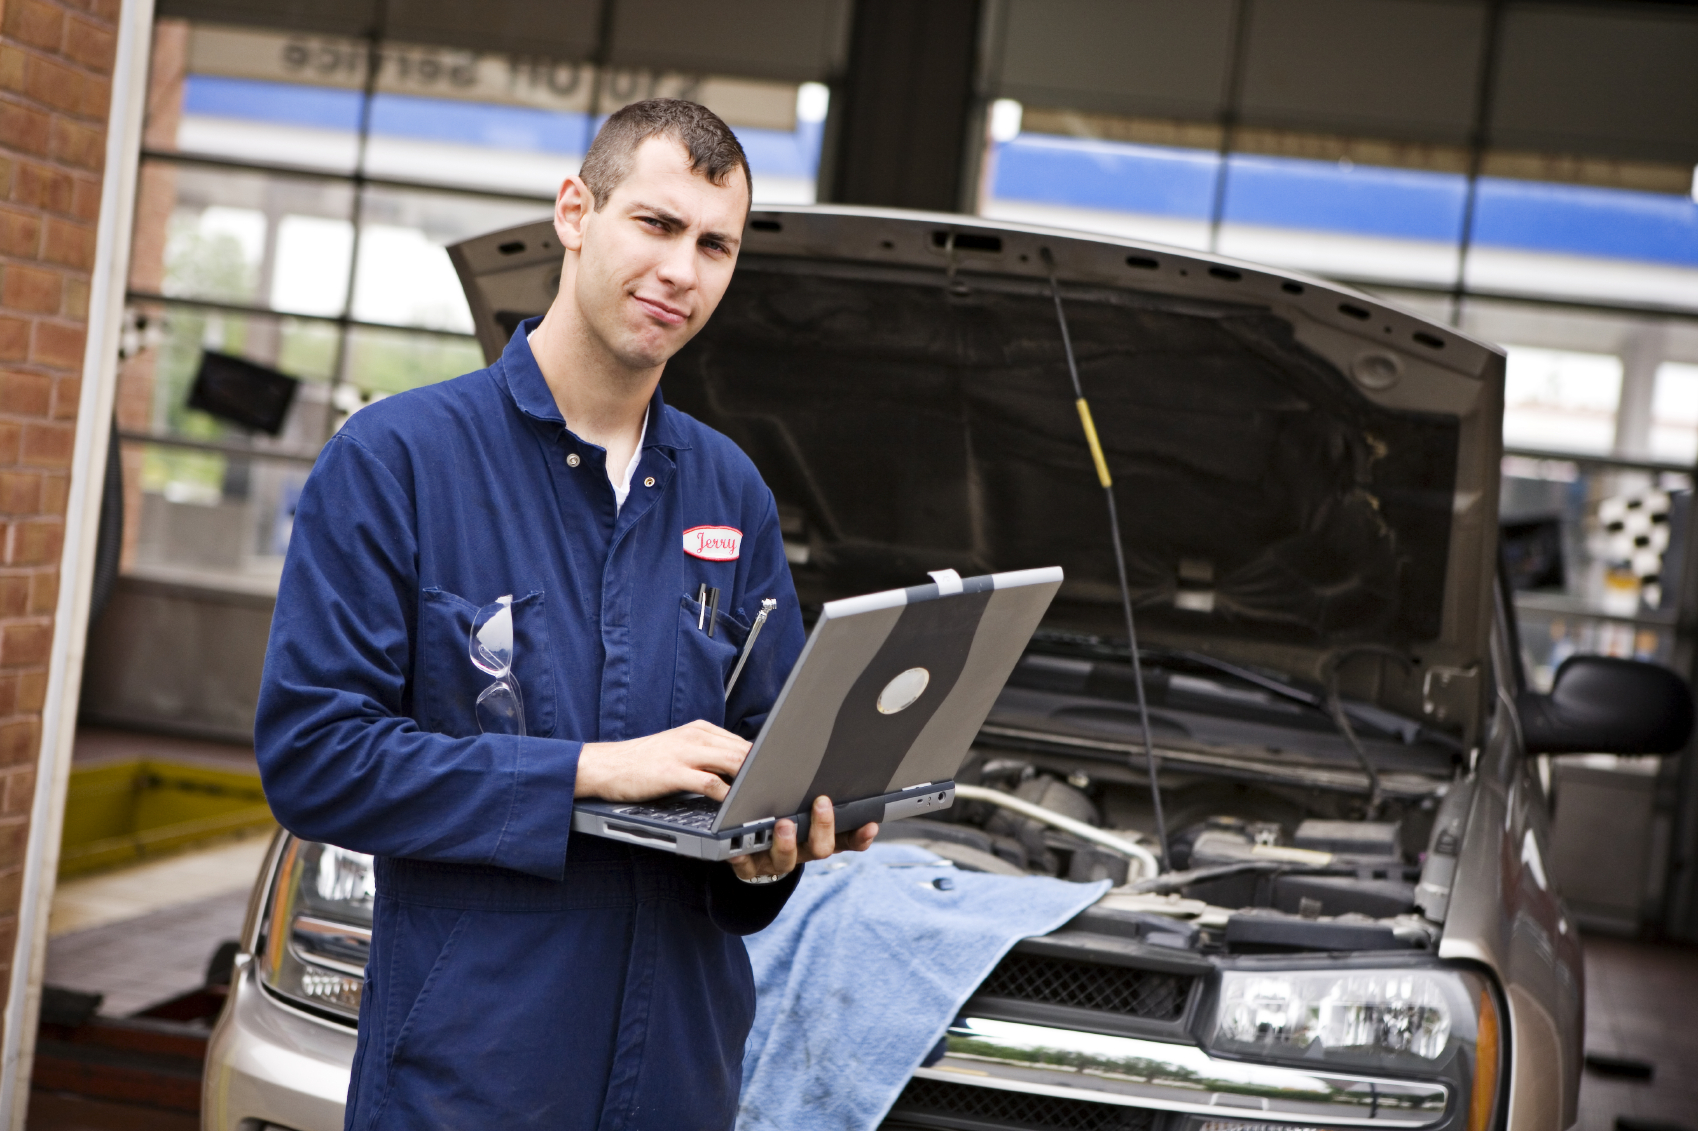 Auto Mechanic majors in college